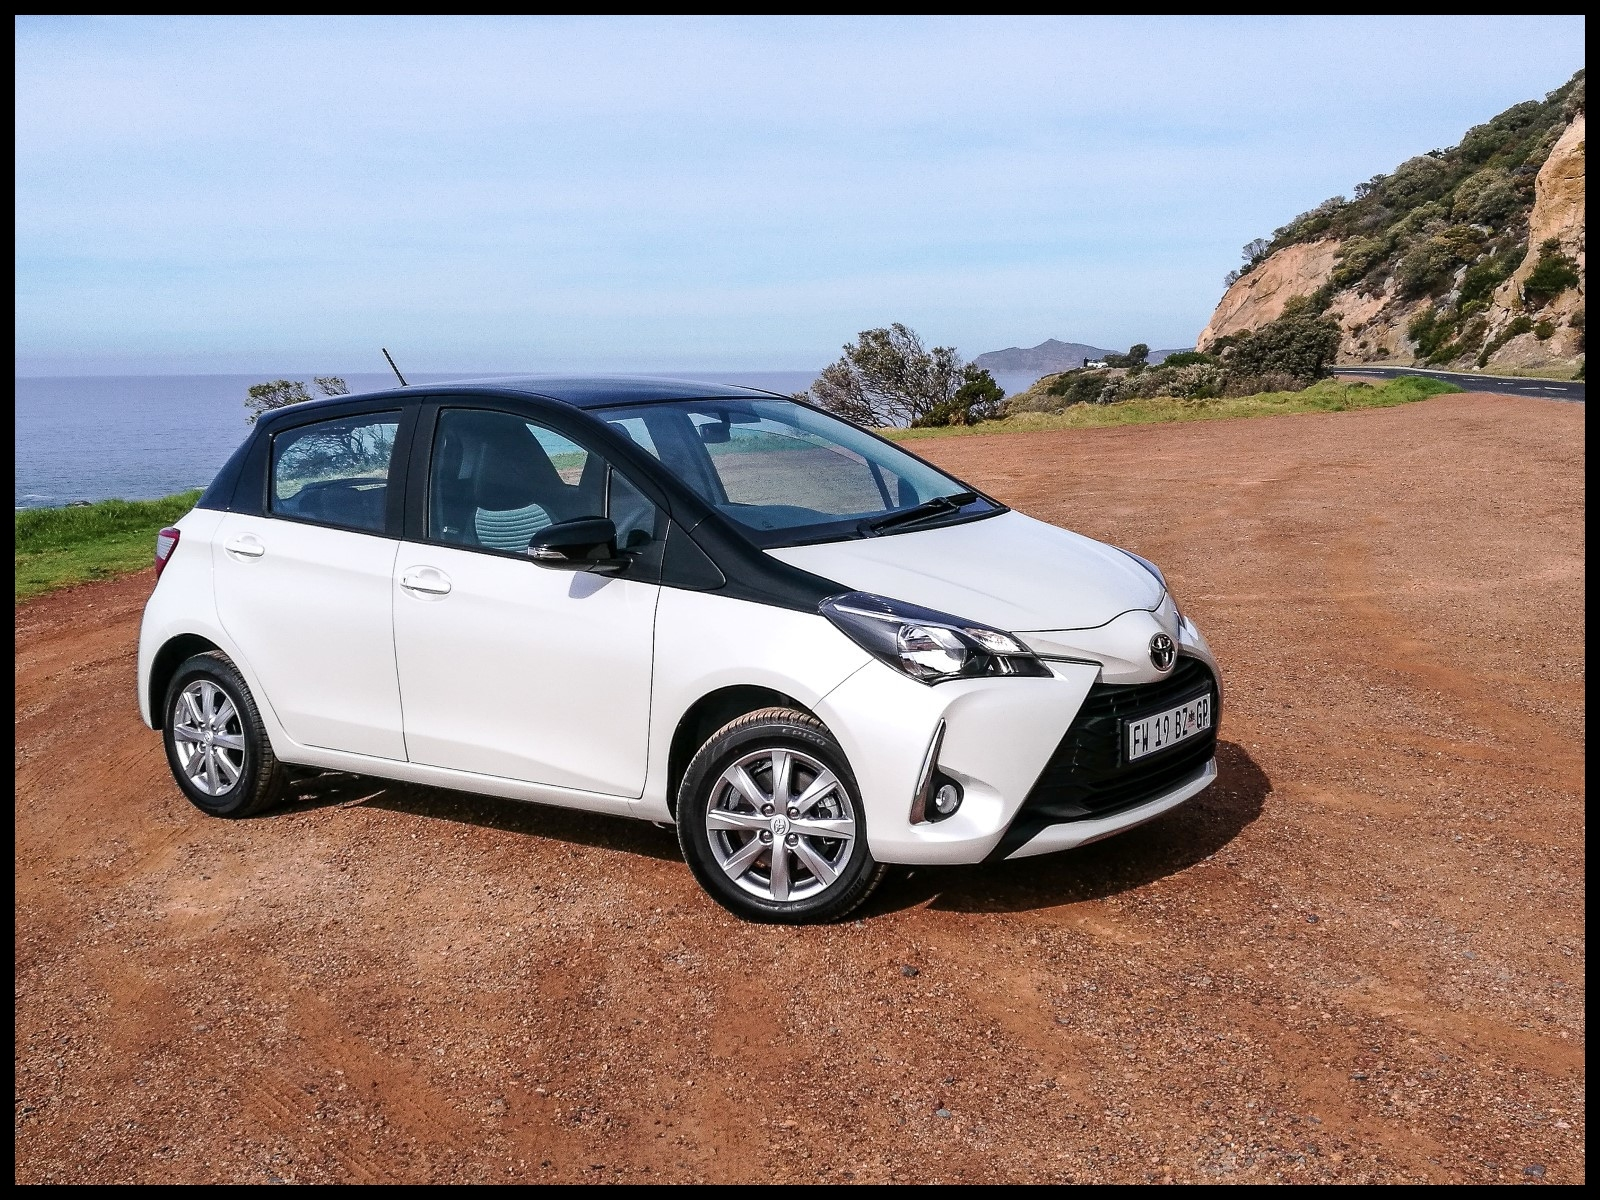 2018 toyota Yaris south Africa Inspirational toyota Yaris Pulse 2017 Launch Review Cars